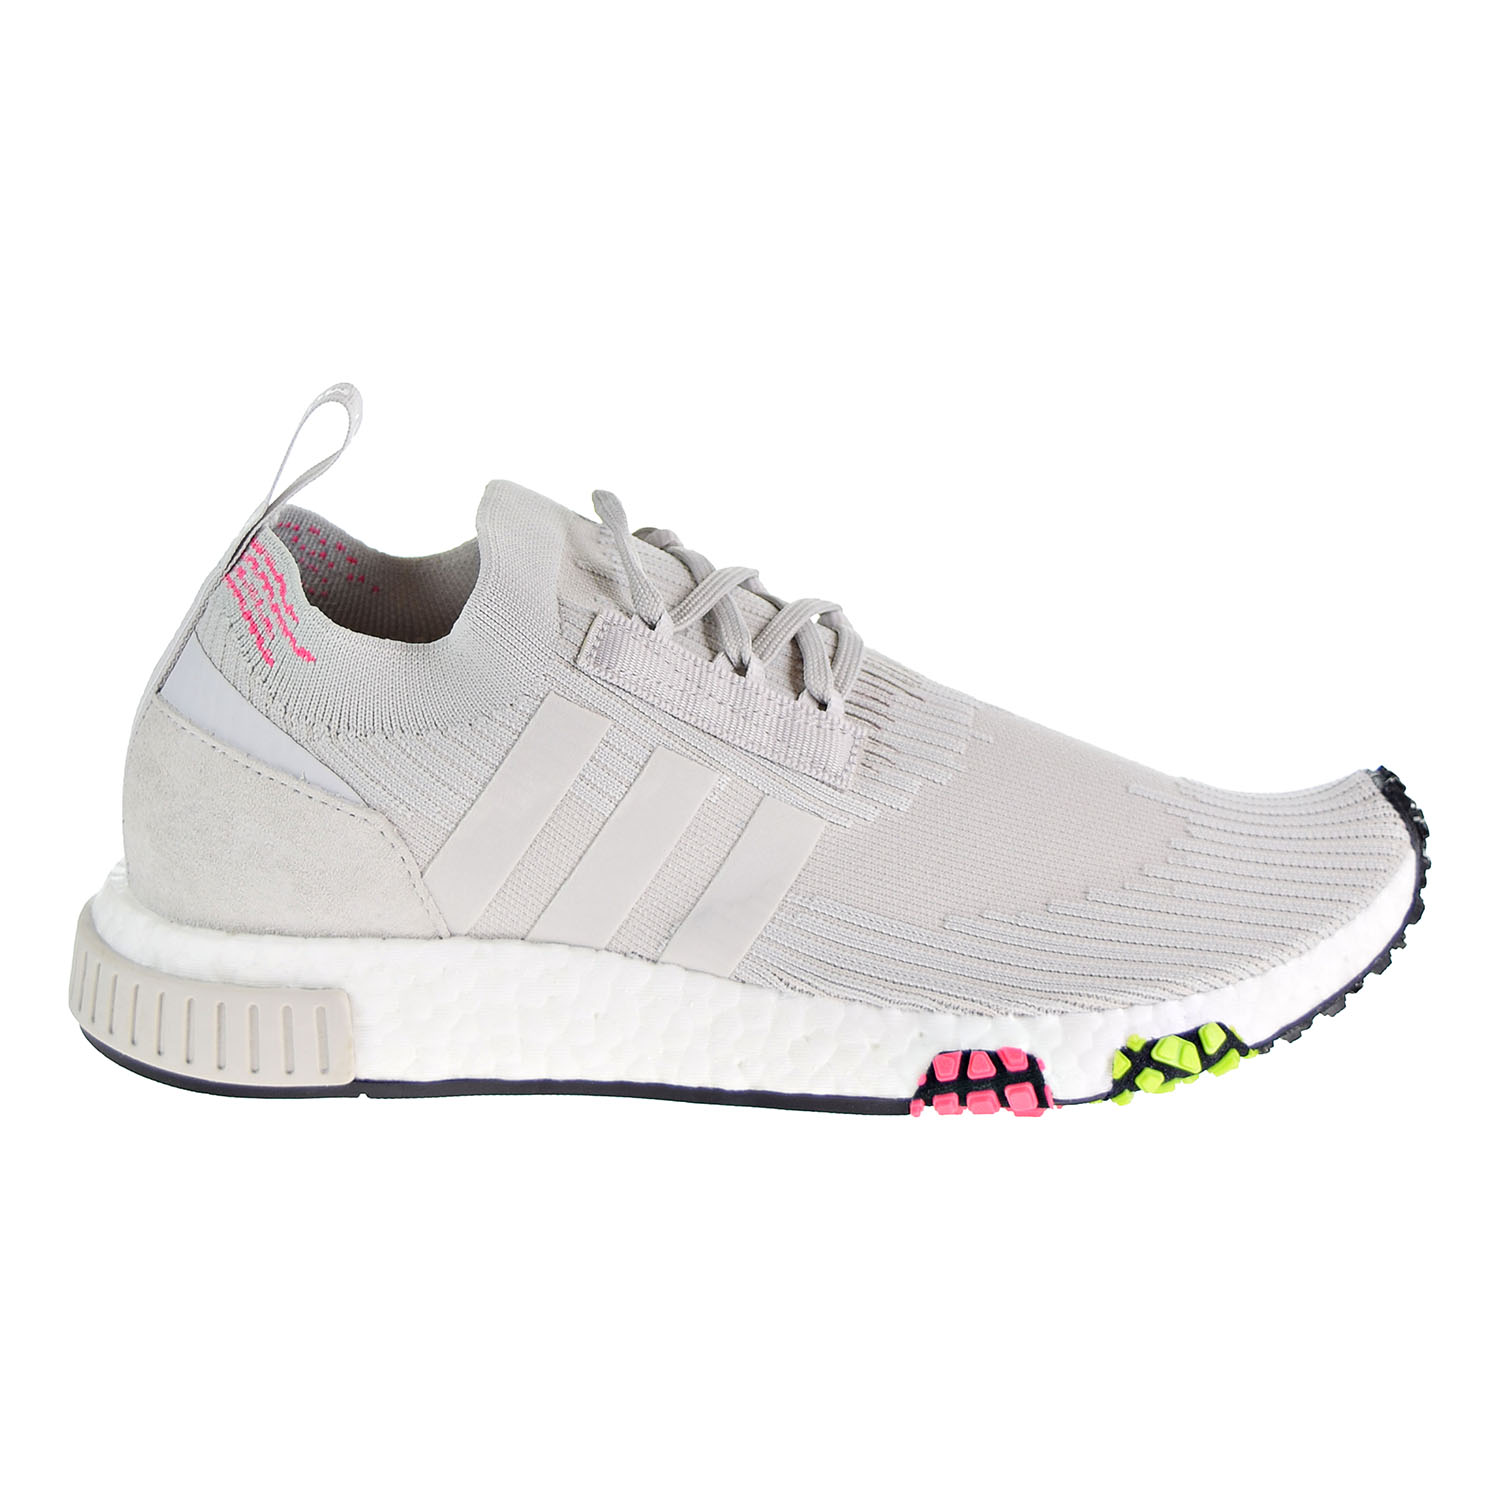 Shoes Grey One-Solar Pink CQ2443